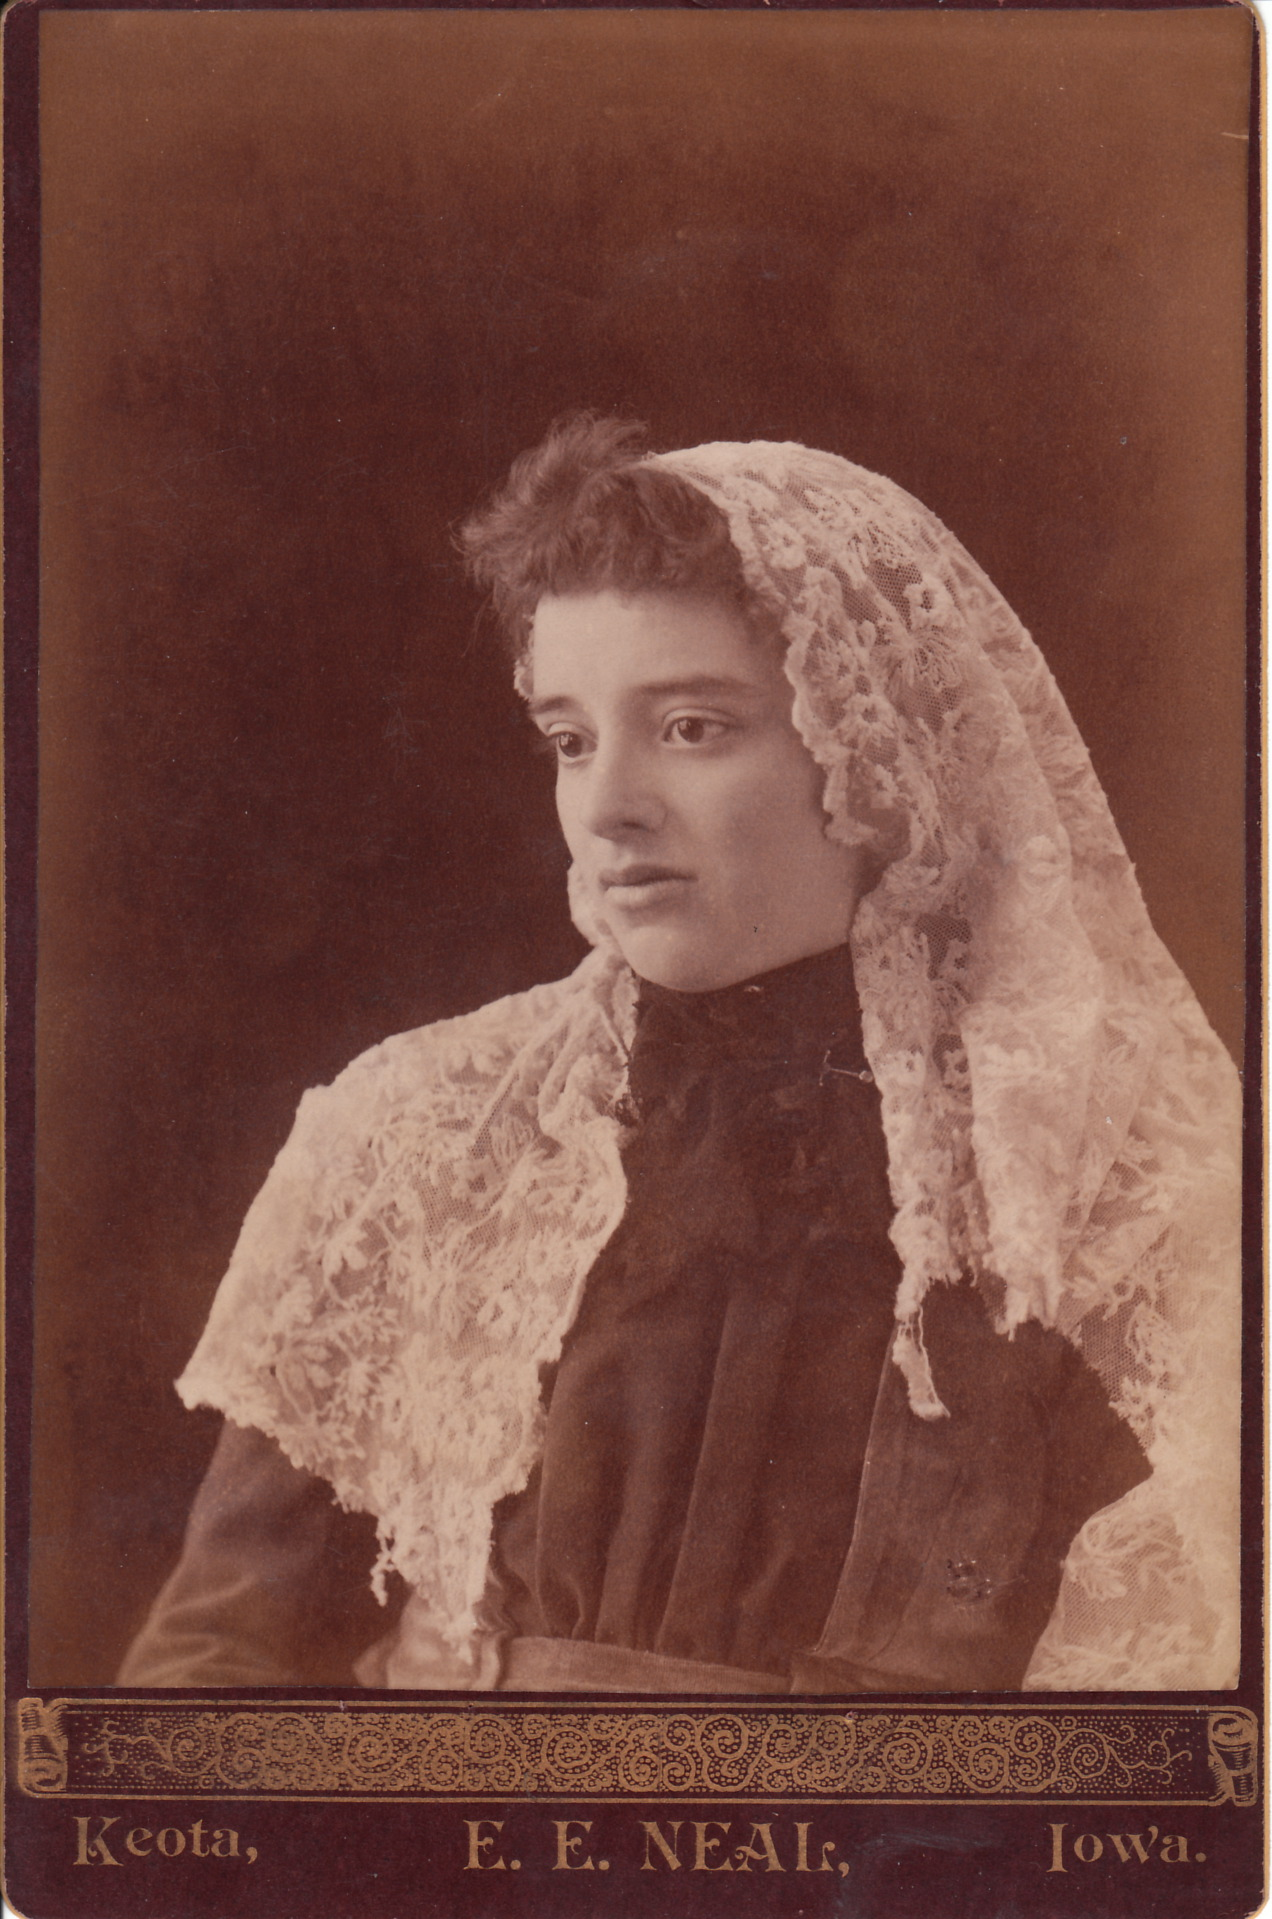 The woman is wearing a large lace veil or kerchief